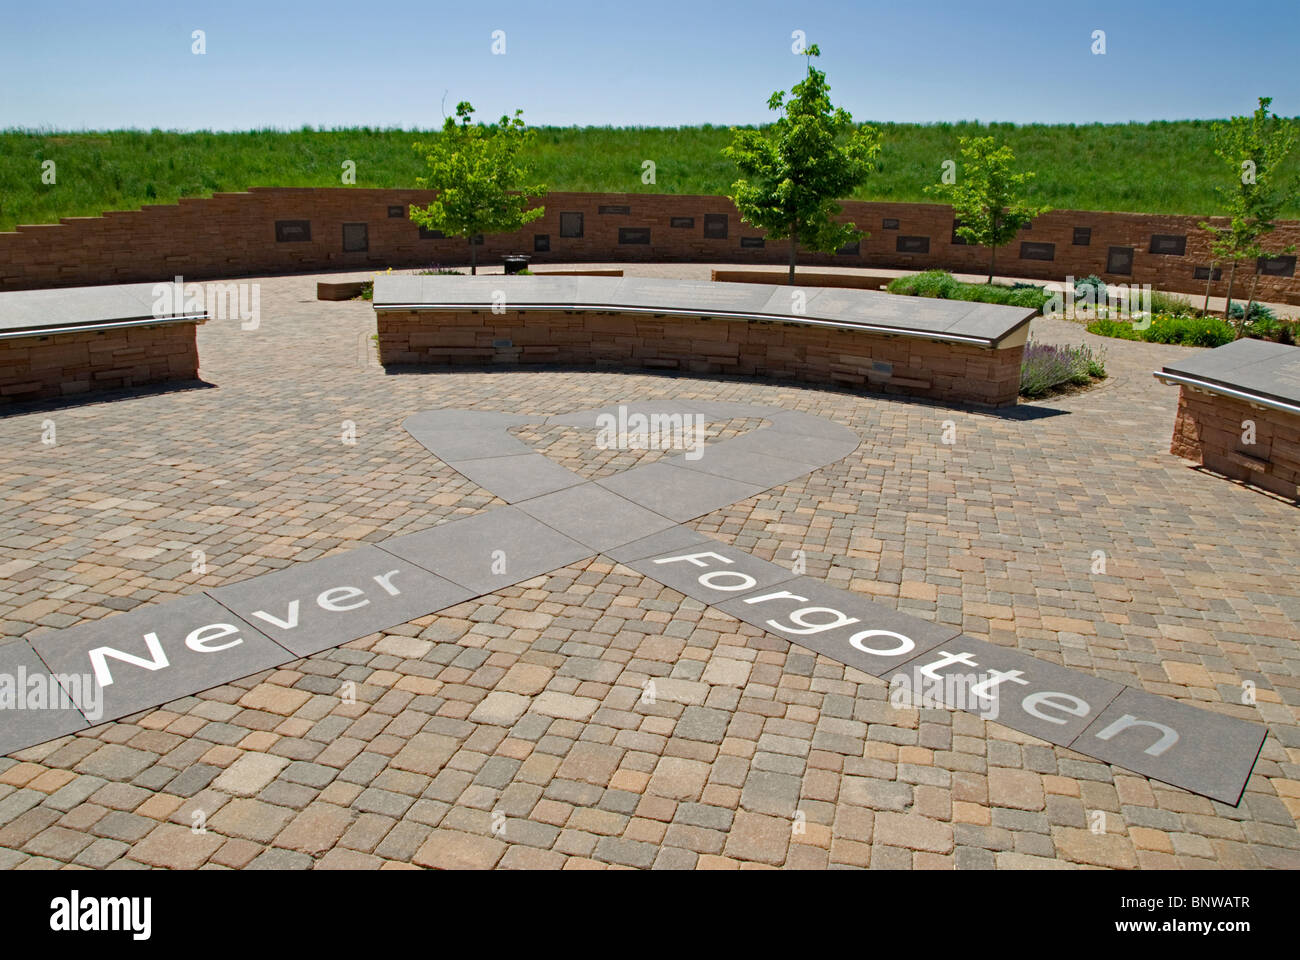 Entrance to Columbine High School Memorial showing the ...